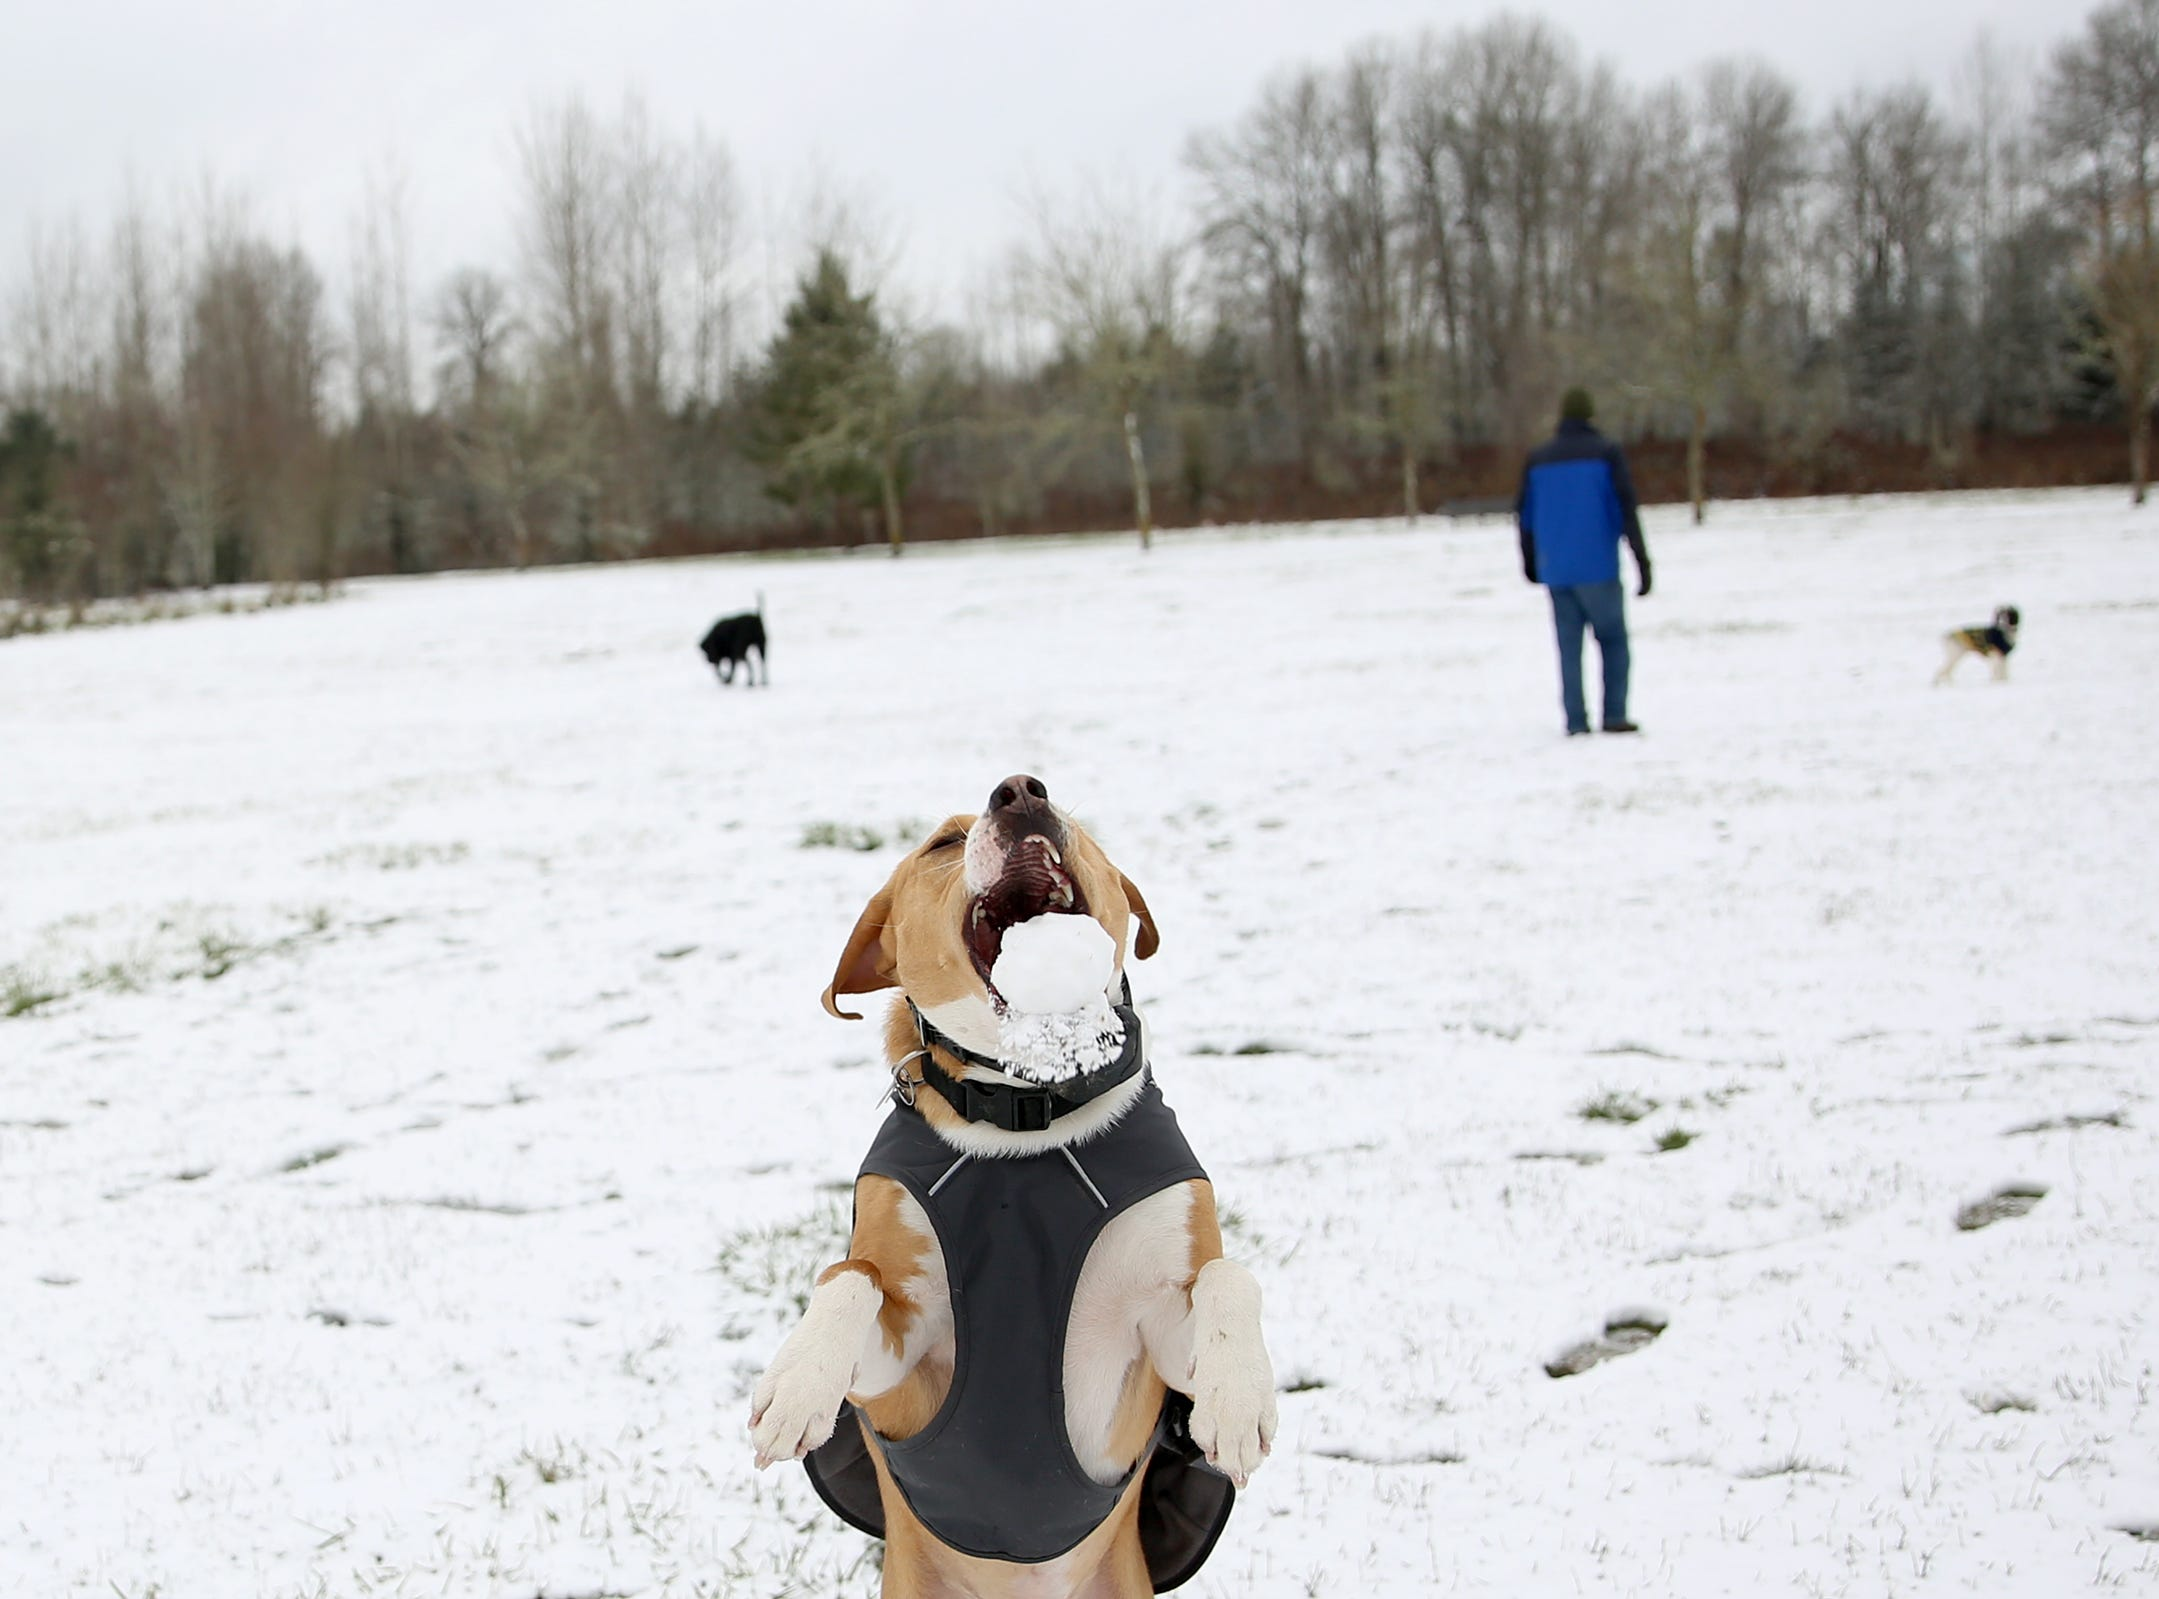 Oliver catches a snow ball in the air at Minto-Brown Island Park in Salem on Wednesday, Feb. 27, 2019.